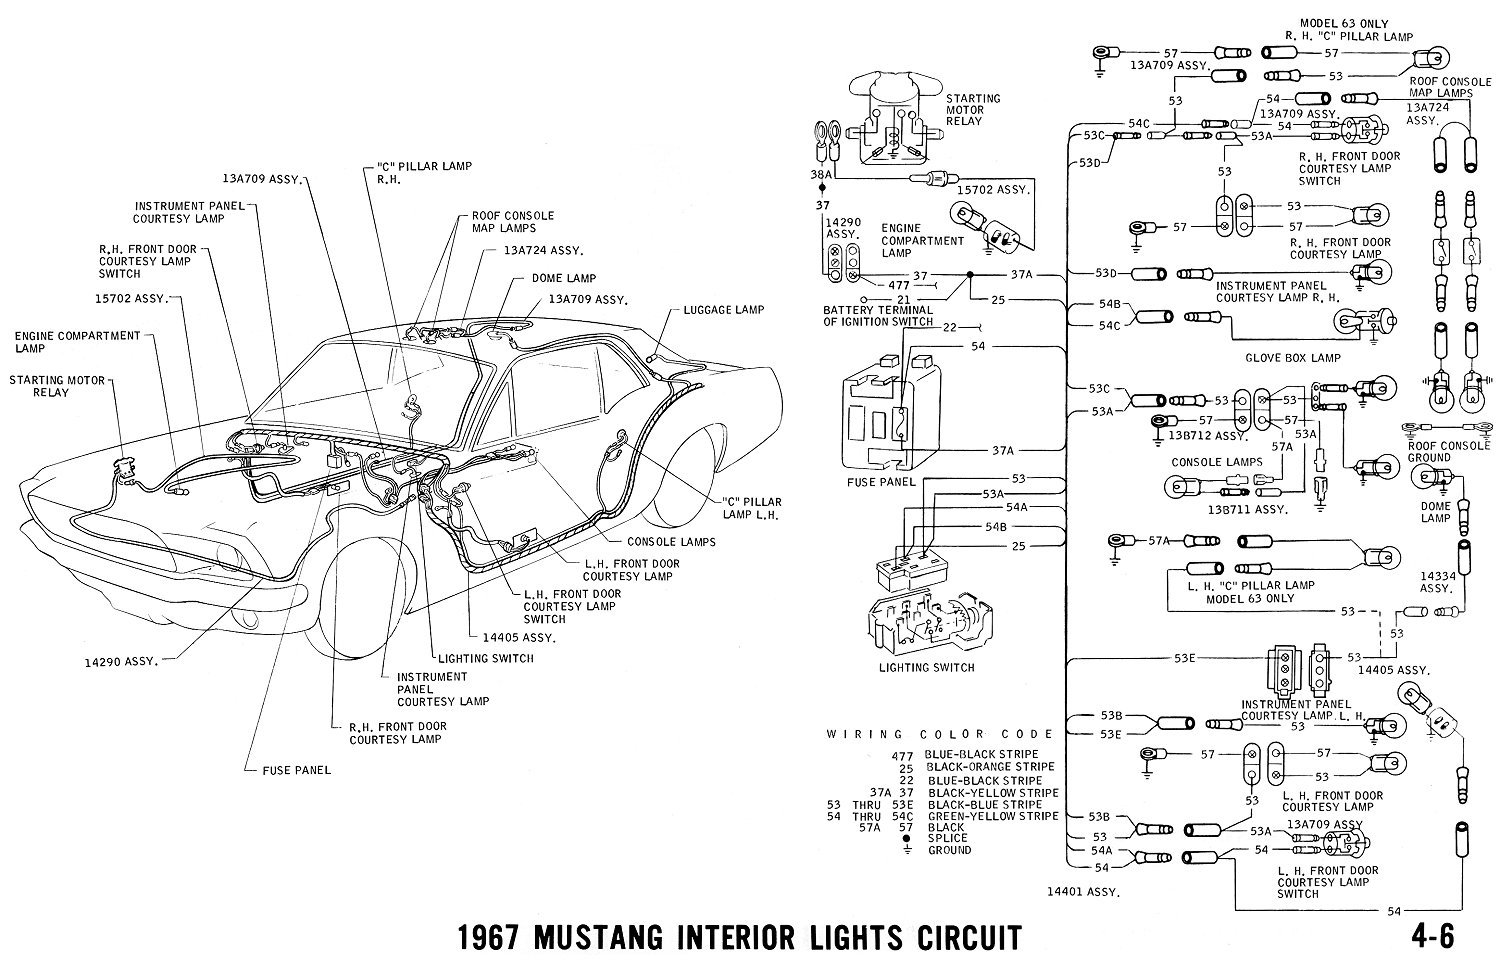 DIAGRAM] 68 Mustang Fastback Wiring Diagram FULL Version HD Quality Wiring  Diagram - WIRINGAUTOPDF.PLURIFIT.FRWiring And Fuse Database